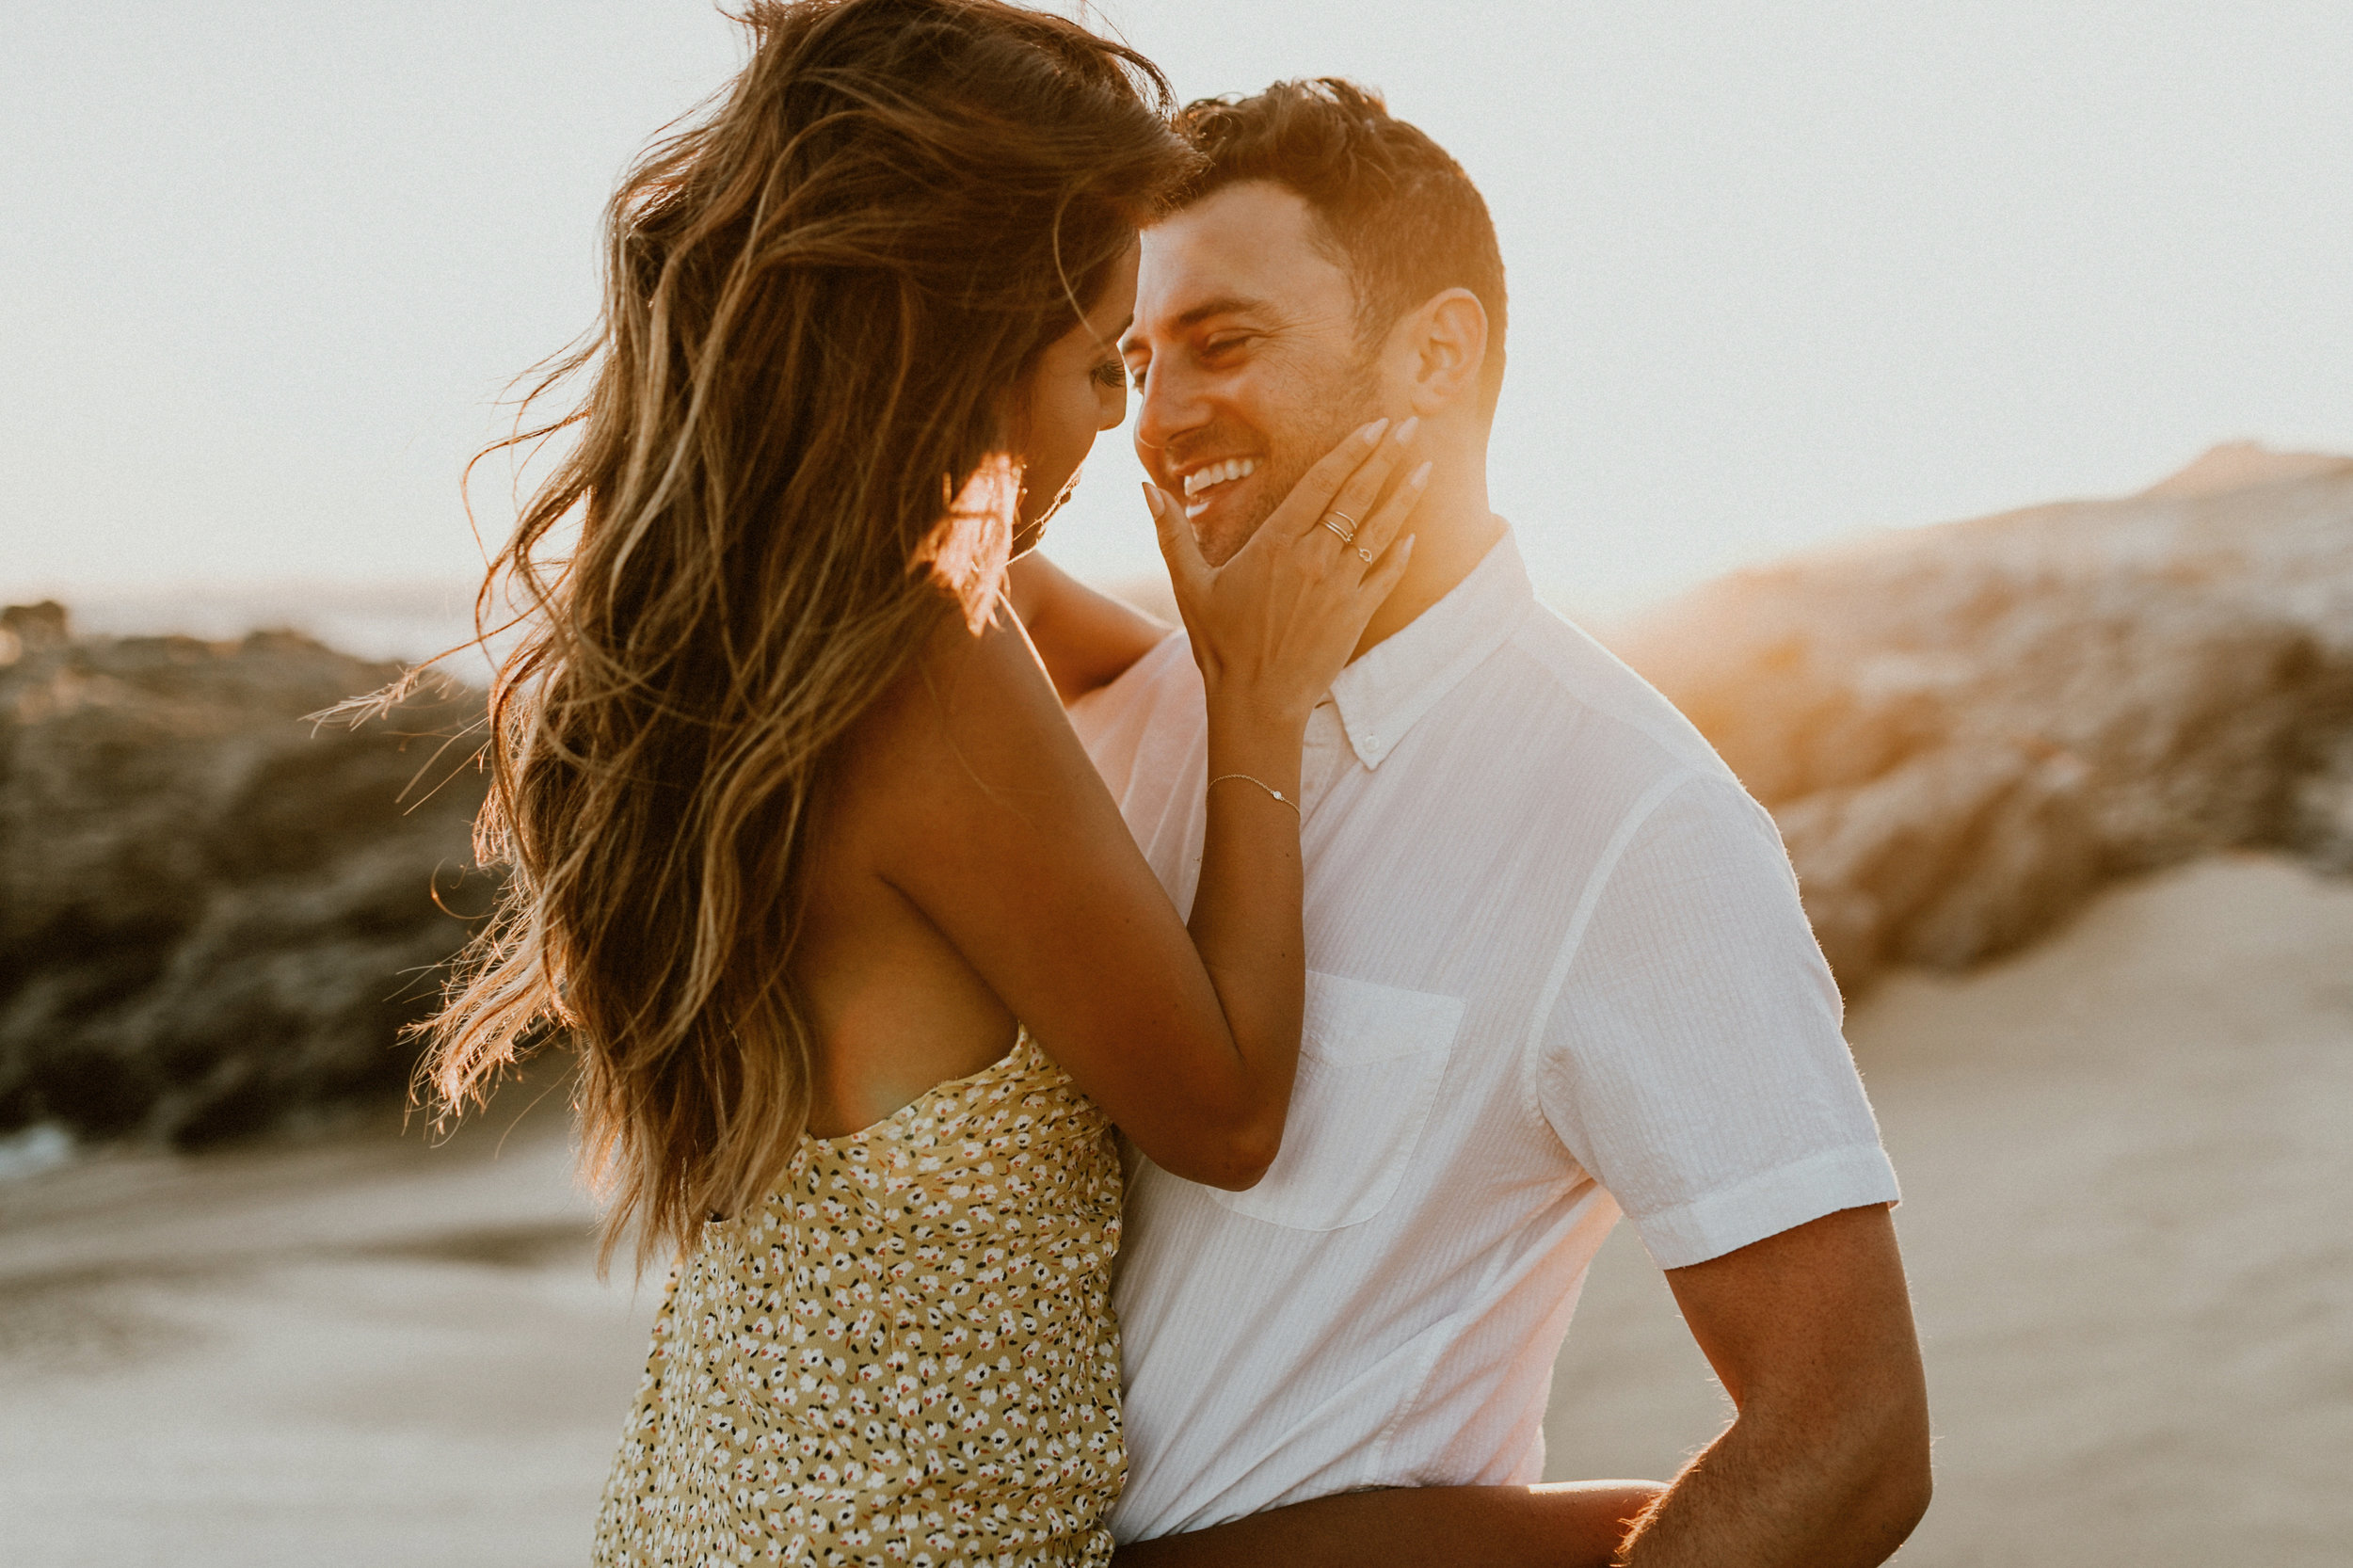 Everyday Pursuits Post Wedding Photoshoot in Los Cabos, Mexico | GIna + Ryan Photography